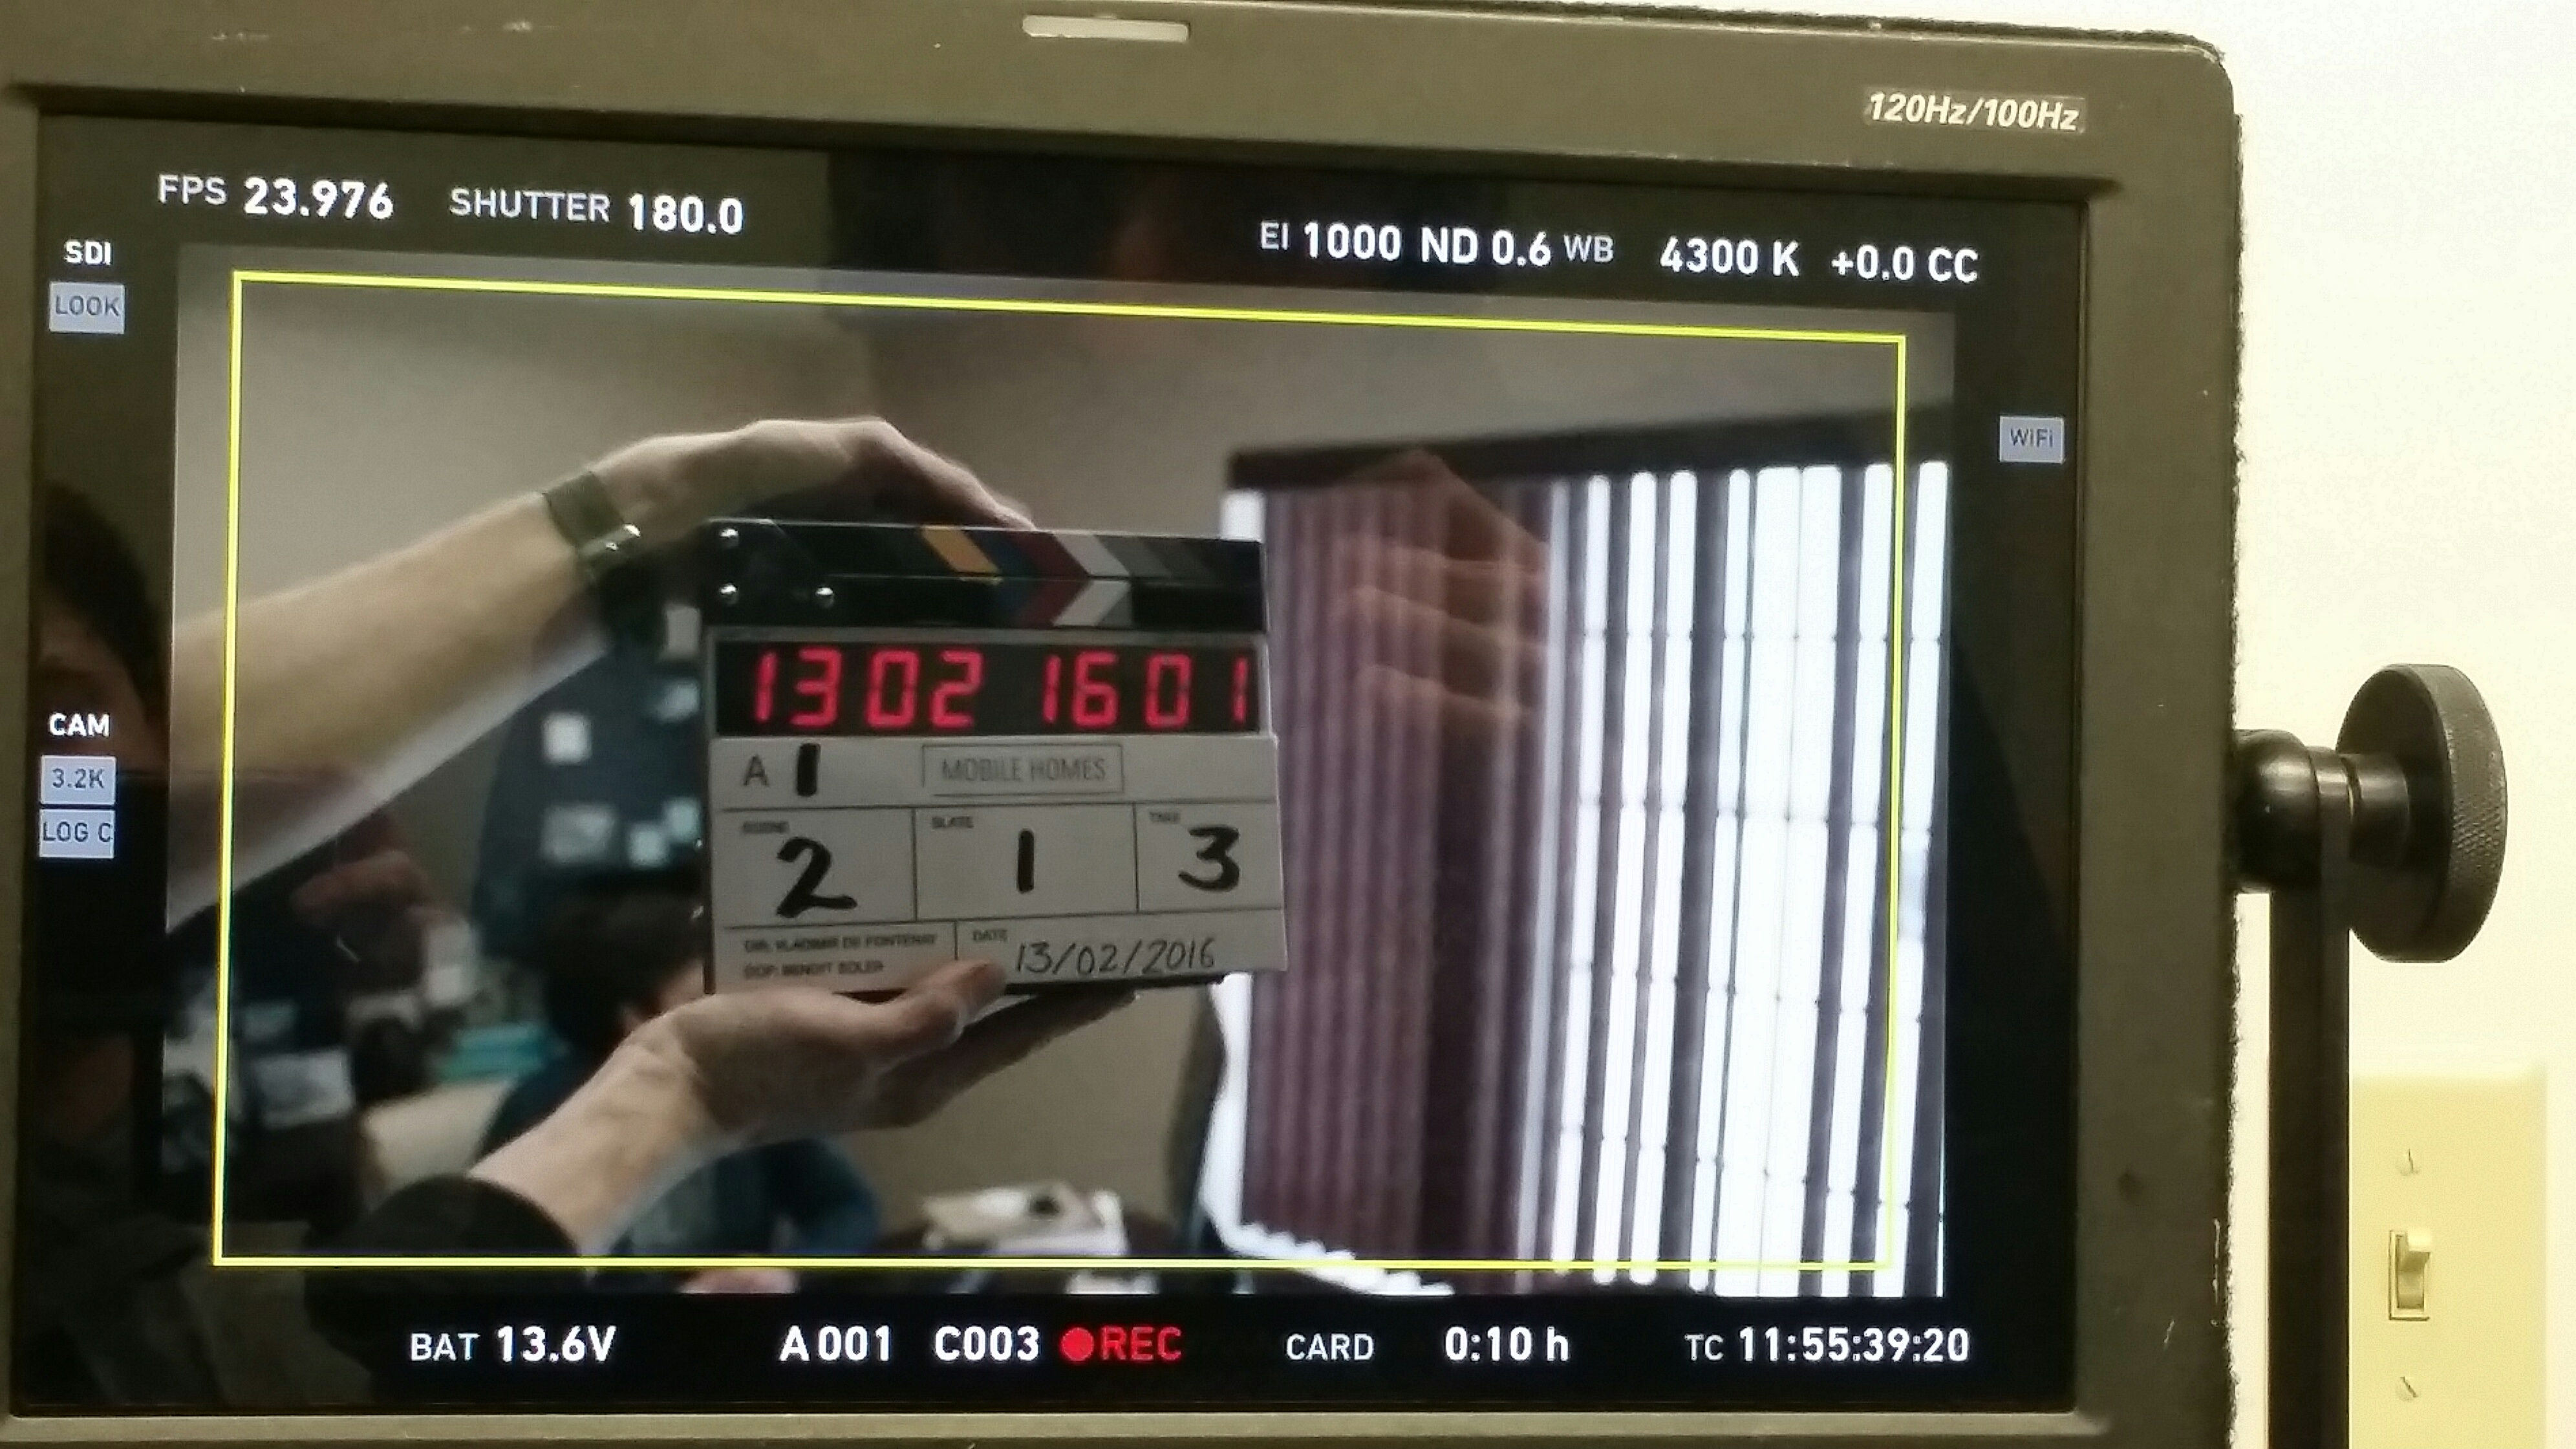 Mobile Homes - first day of shoot